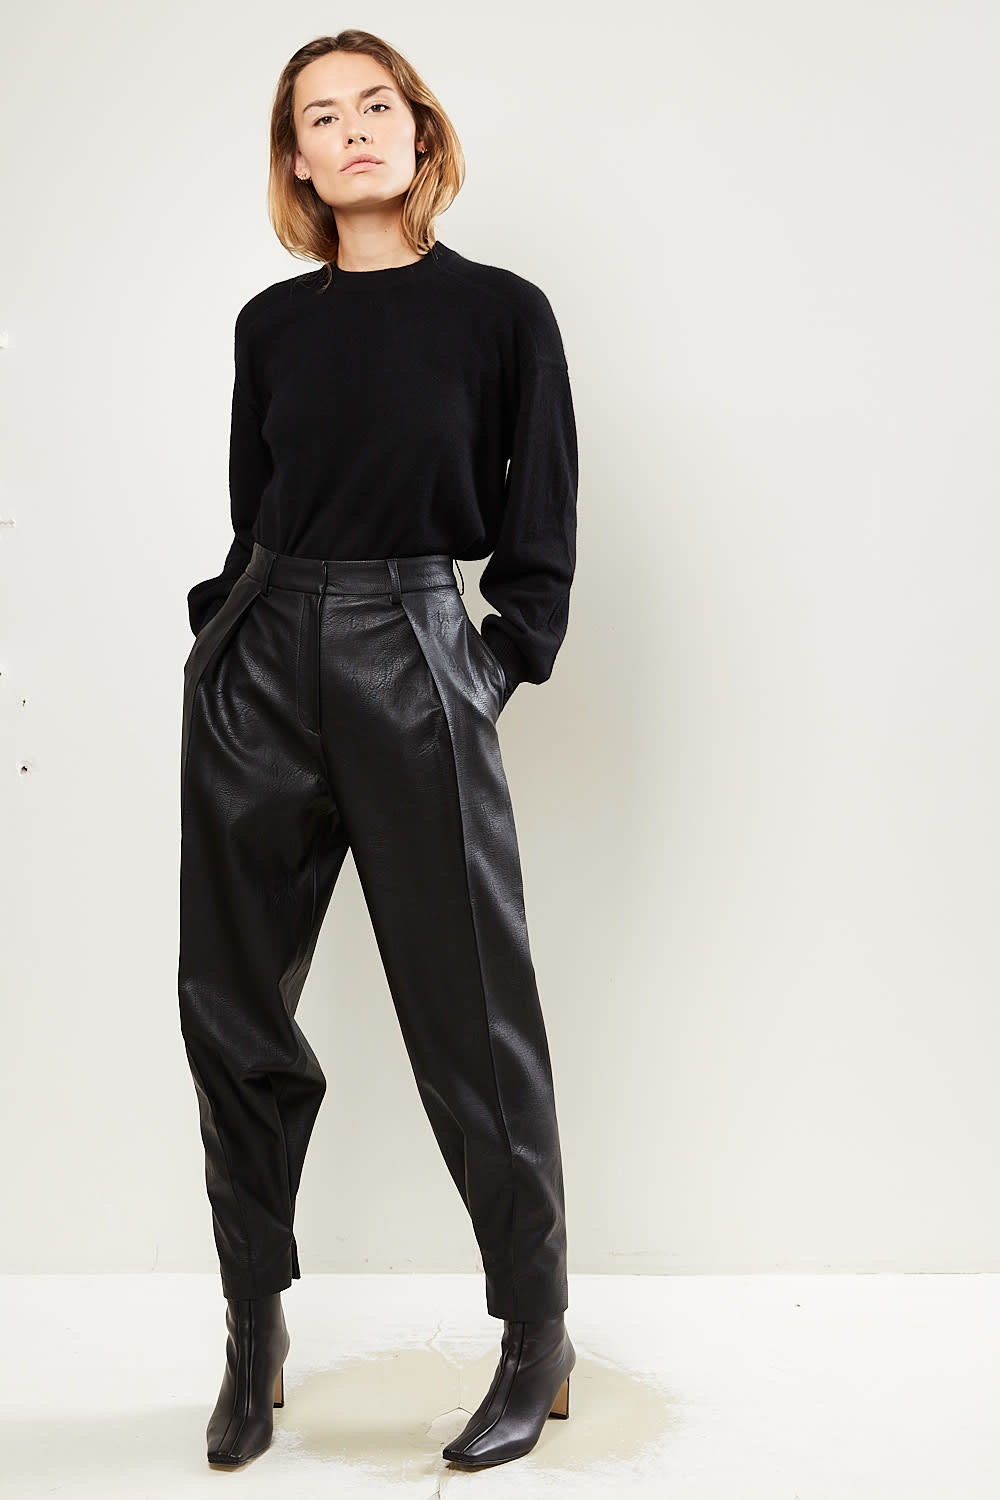 Drae Ian faux leather pants